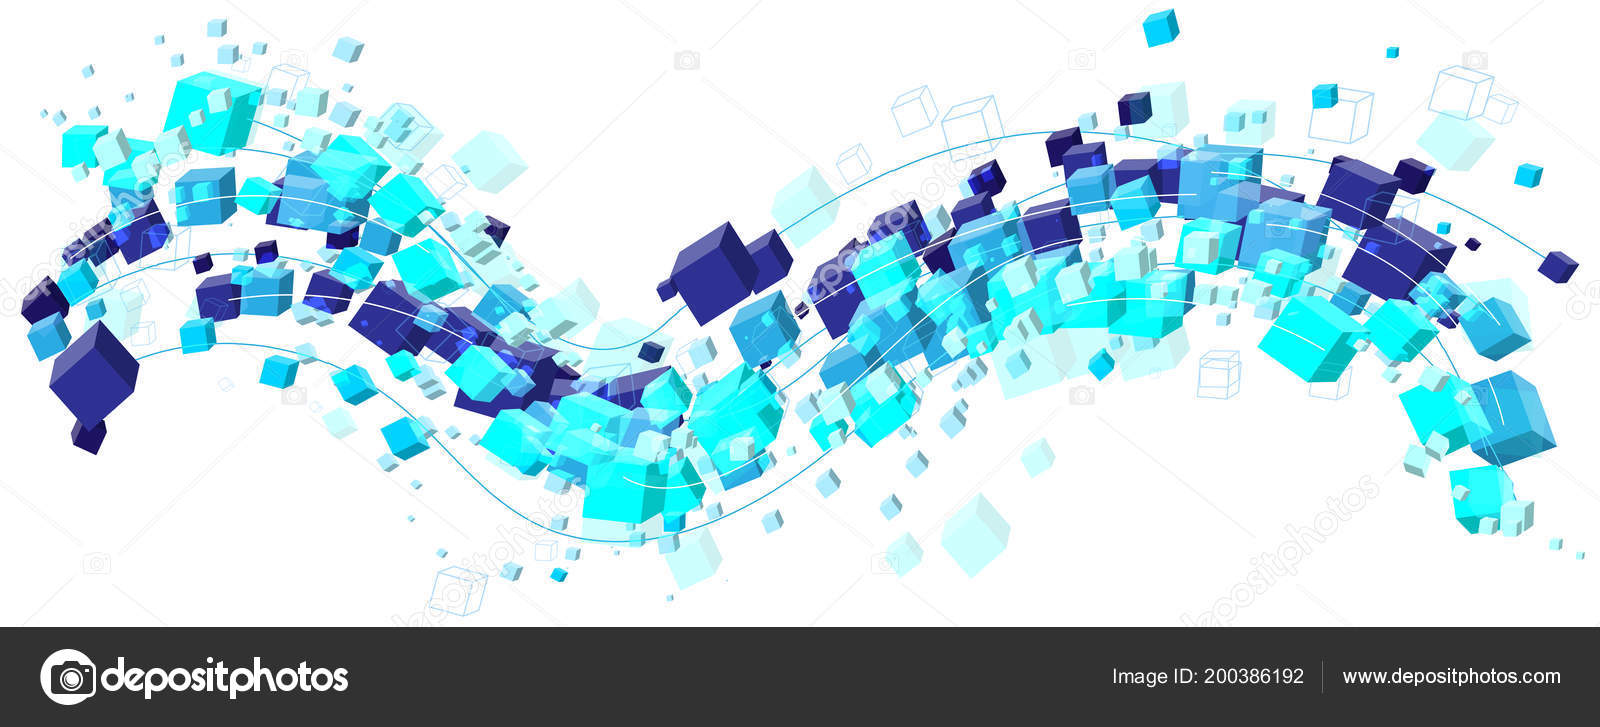 Abstract Cool Blue Cubes Shapes Stream Wave Vector Format